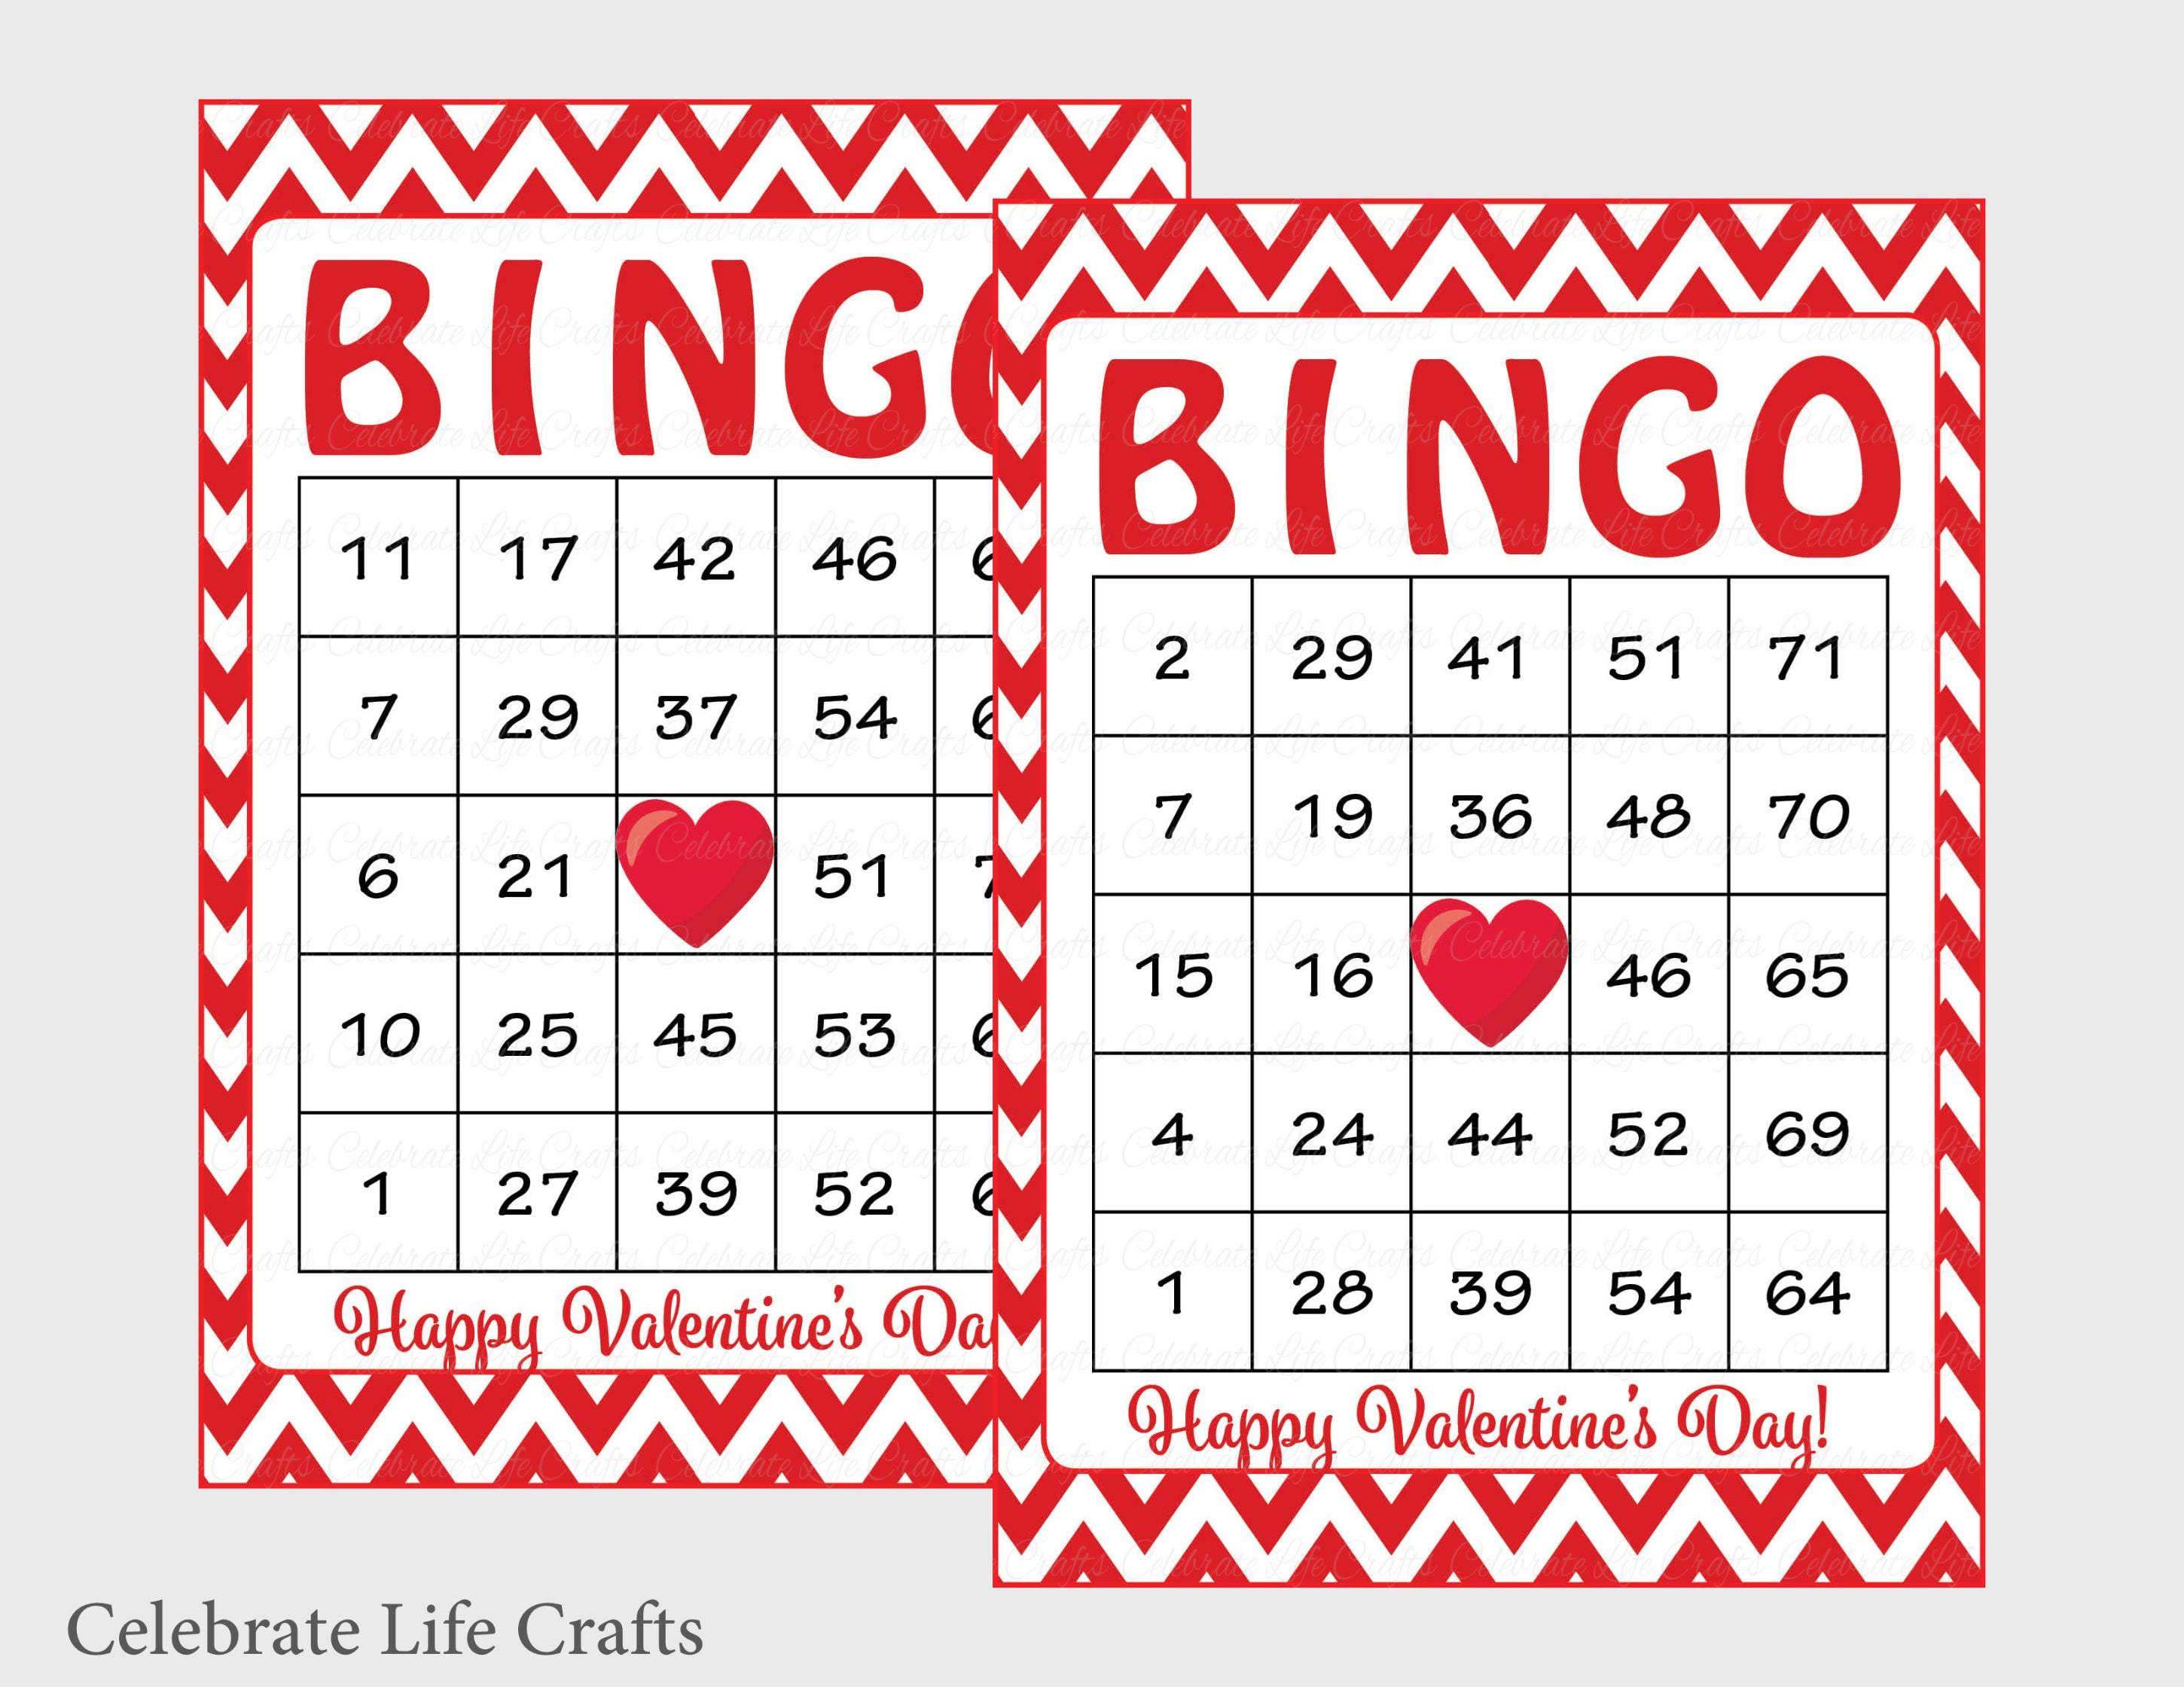 picture regarding Valentine Day Bingo Cards Printable named 60 Valentines Bingo Playing cards - Printable Valentine Bingo Playing cards - Prompt Obtain - Valentines Working day Video game for children - Purple Chevrons V1006